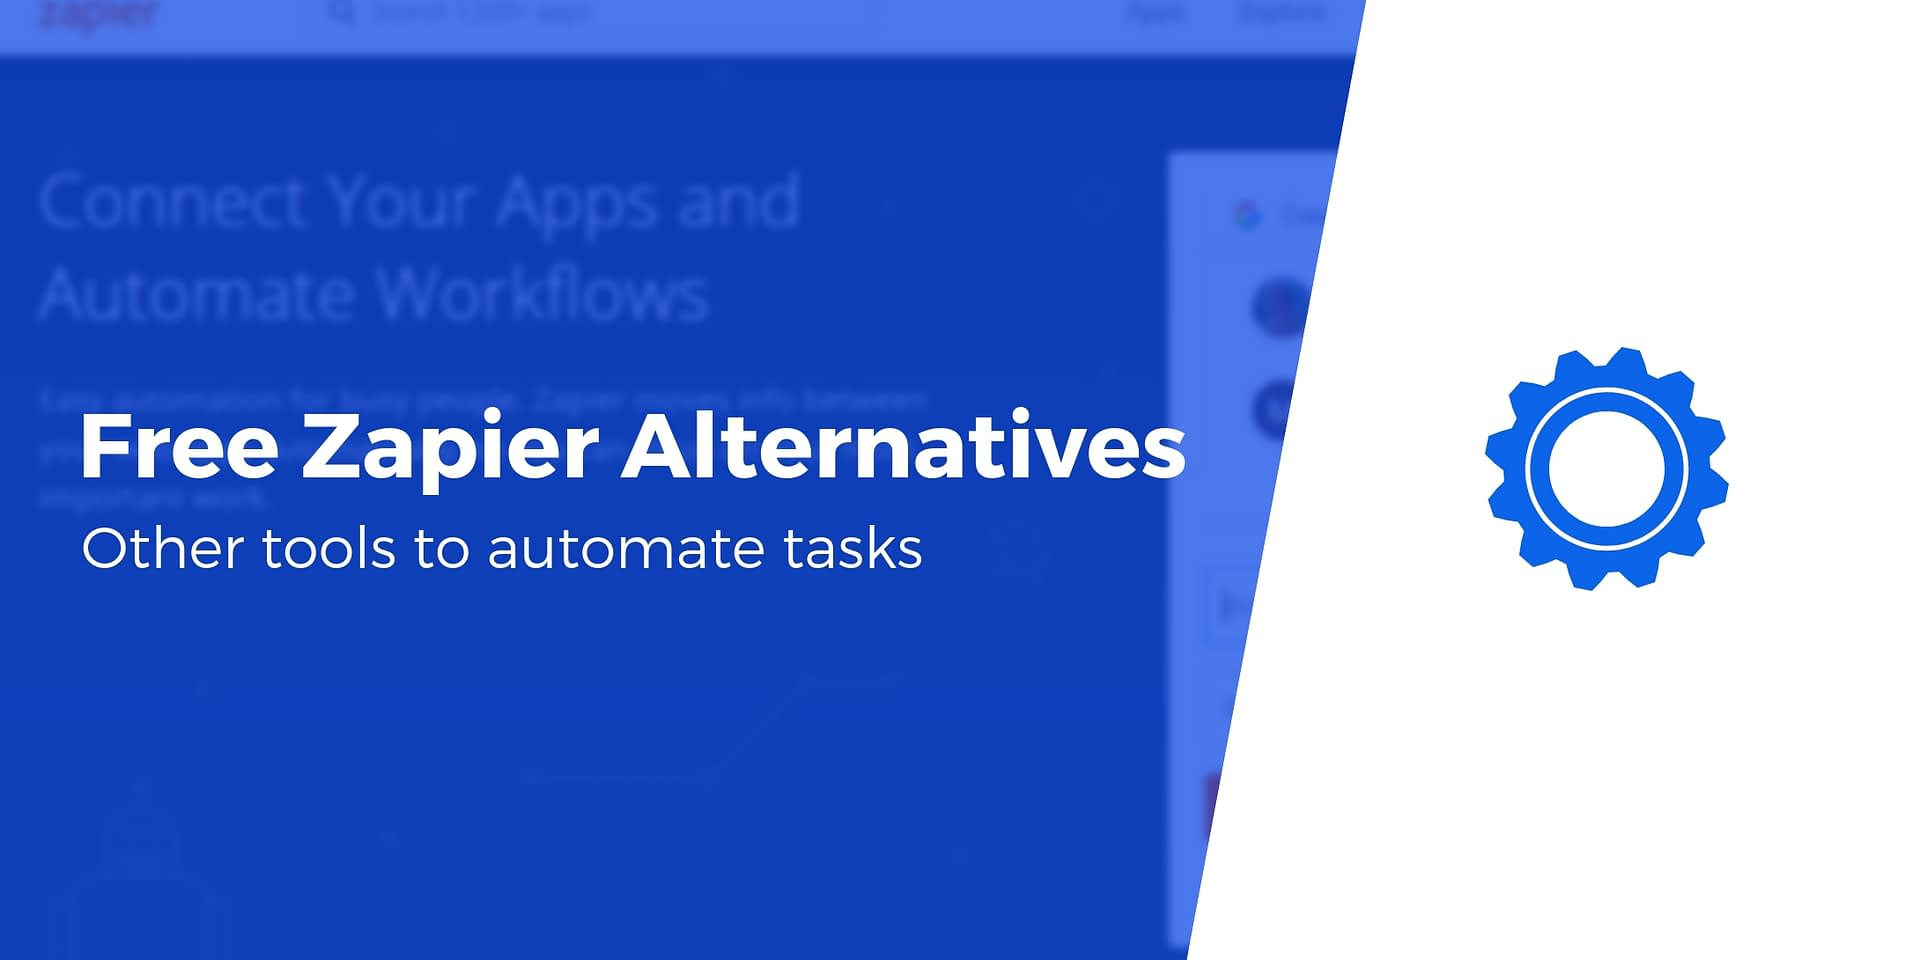 5 Top Free Zapier Alternatives: Which One Will You Choose?